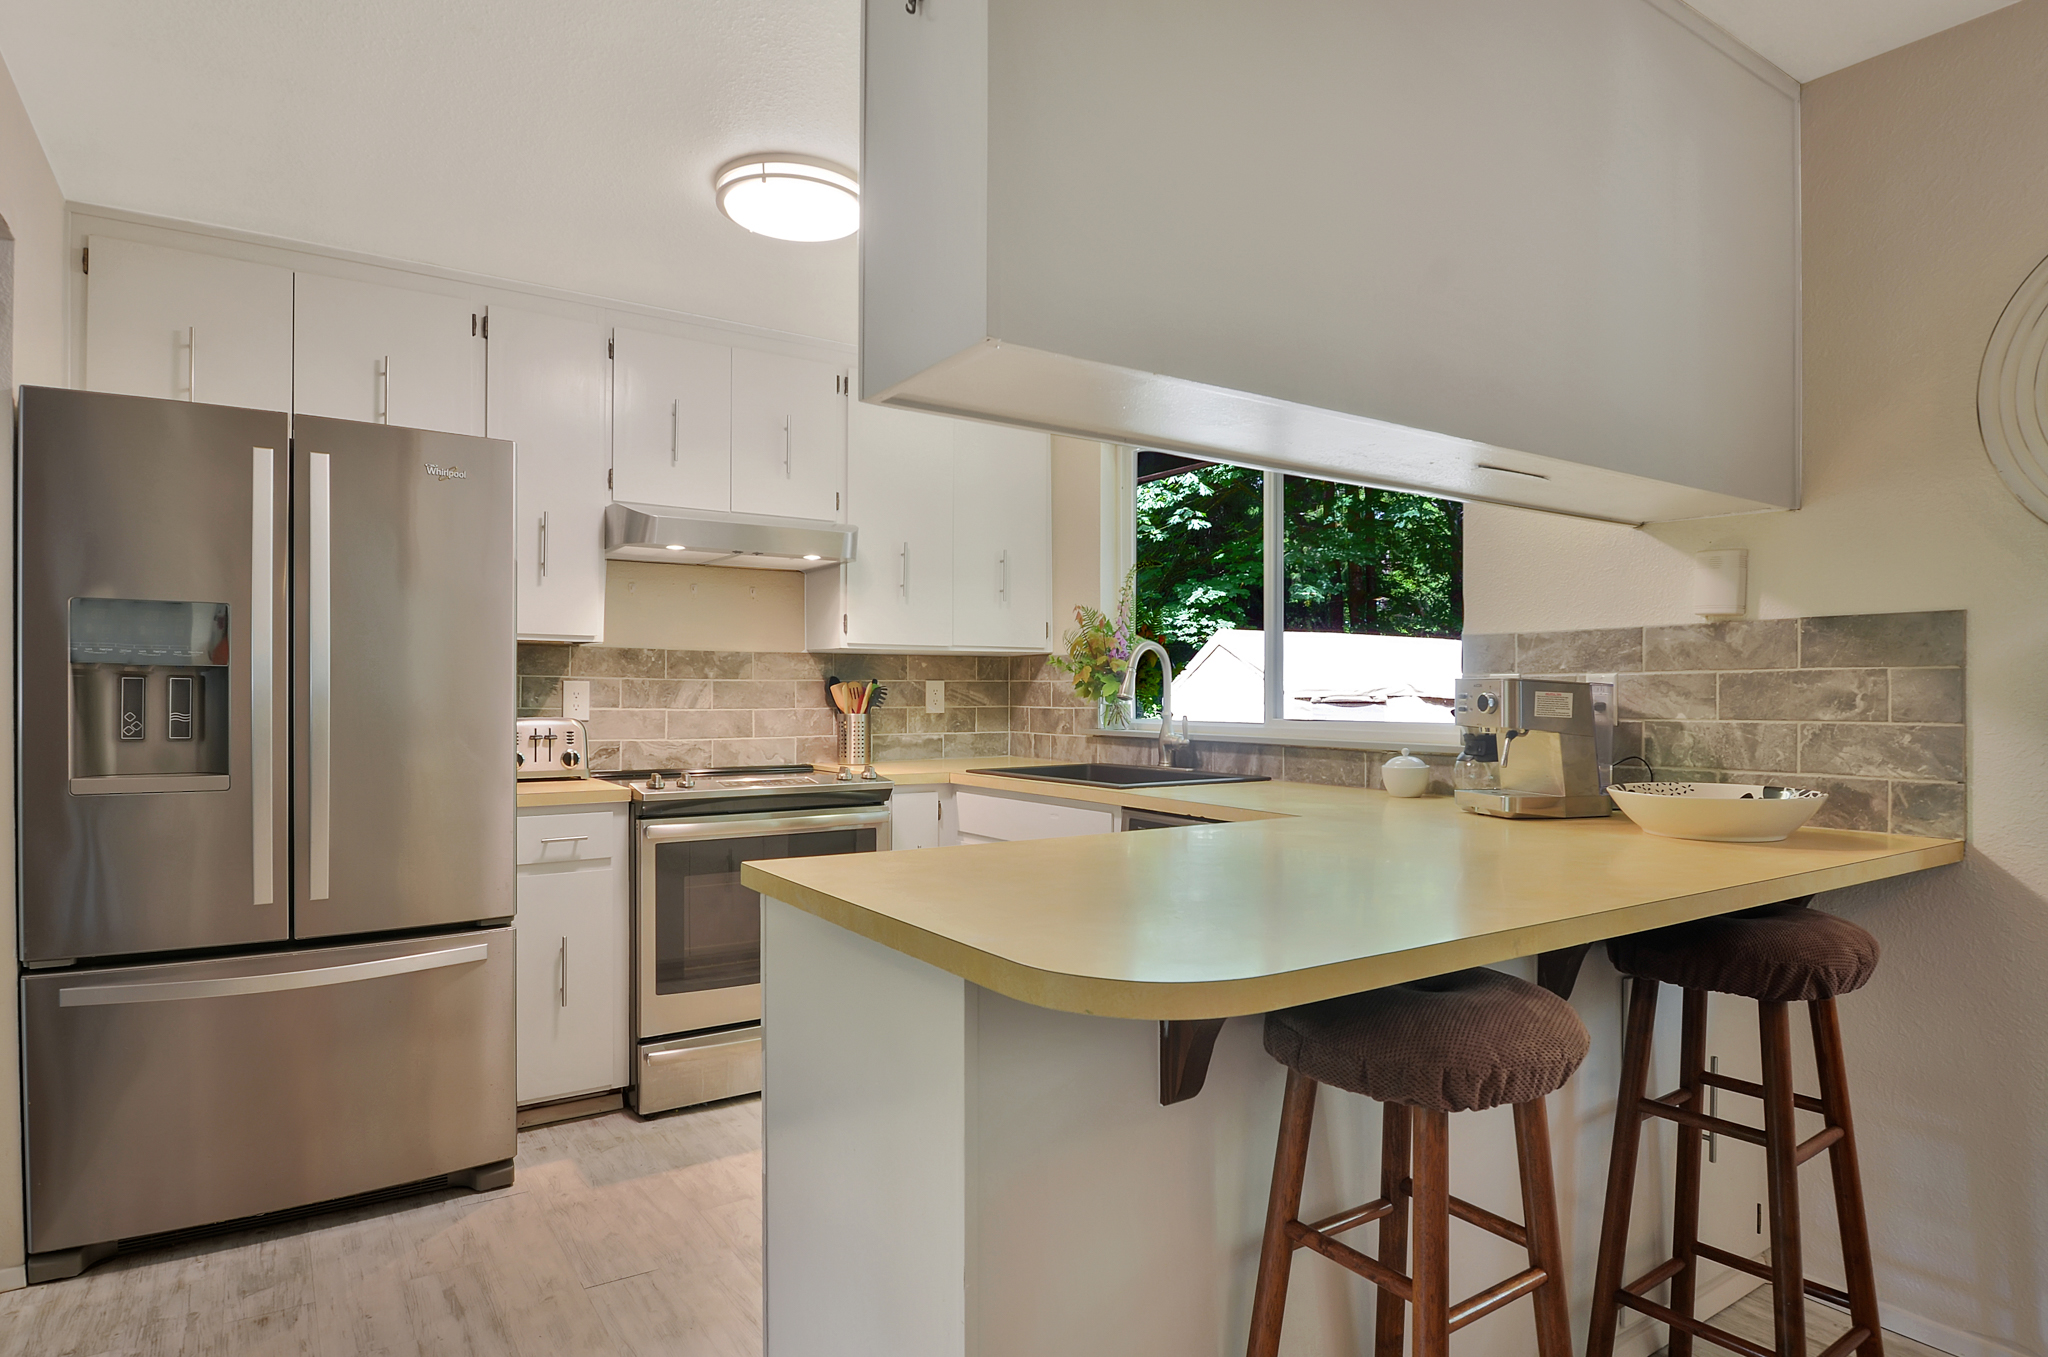 Bar stools are a great spot to stick your friends or kids while getting meals or a snack ready. This design also ensures a good amount of counter space for chopping, stirring, and baking. The new refrigerator has a water filter, ice maker, and freezer drawer.